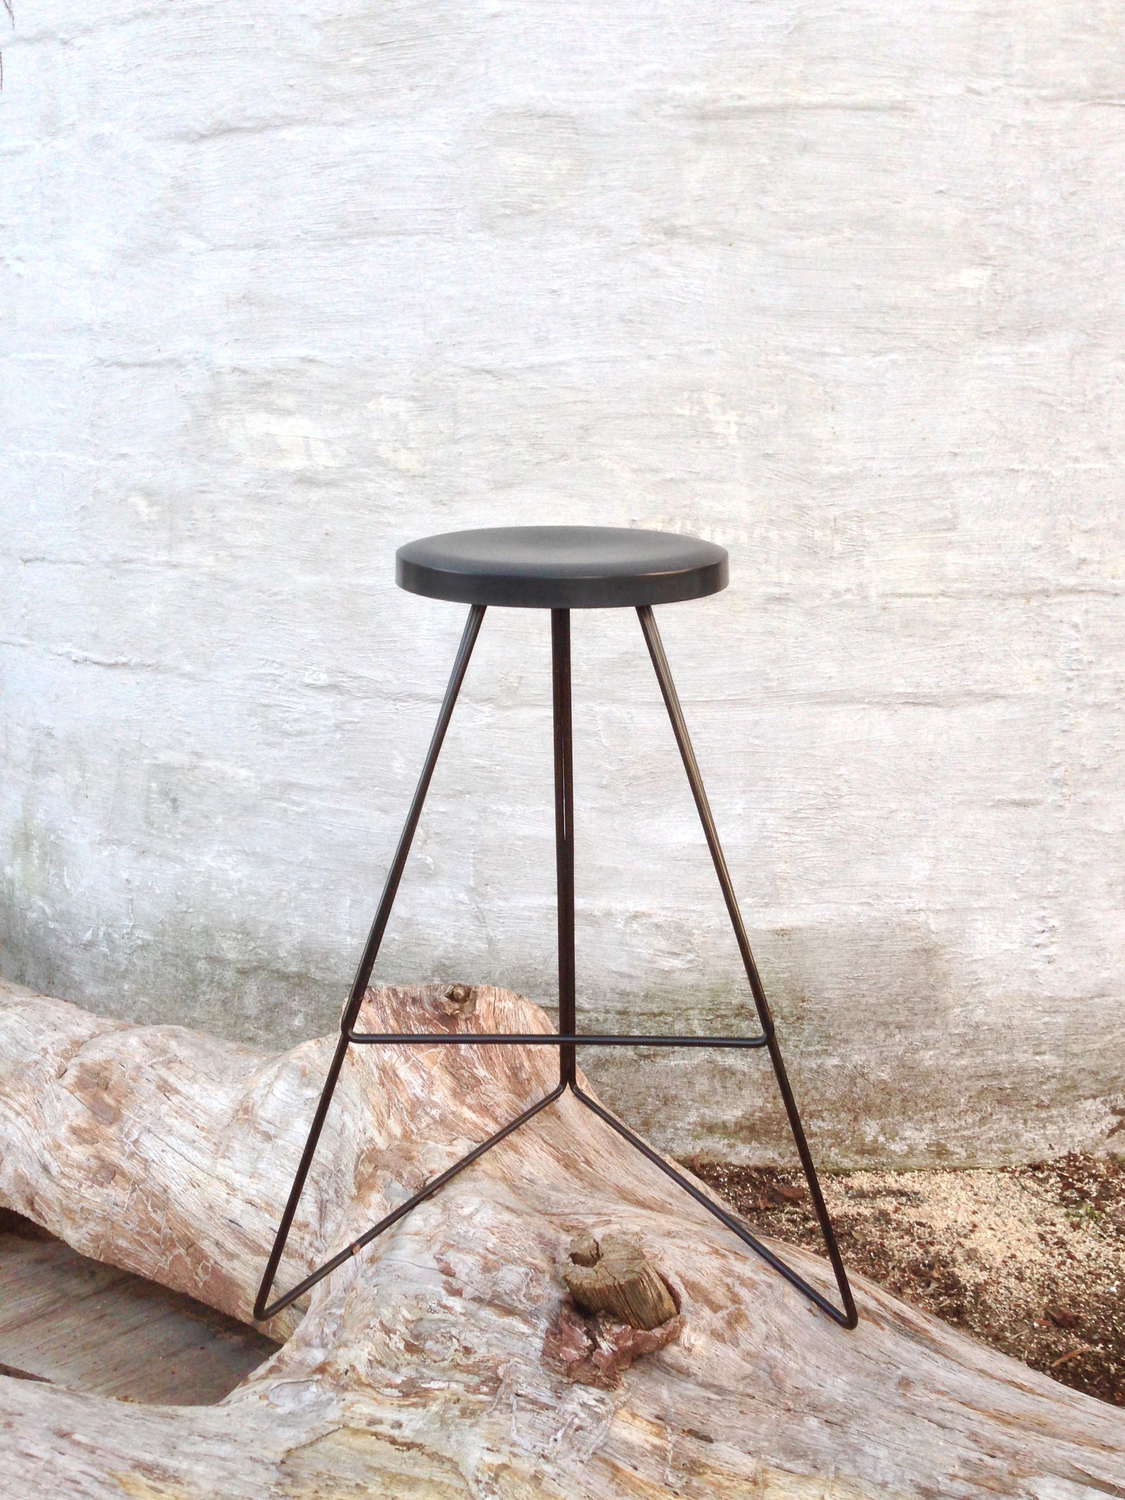 Greta de parry coleman bar stool black and black on log